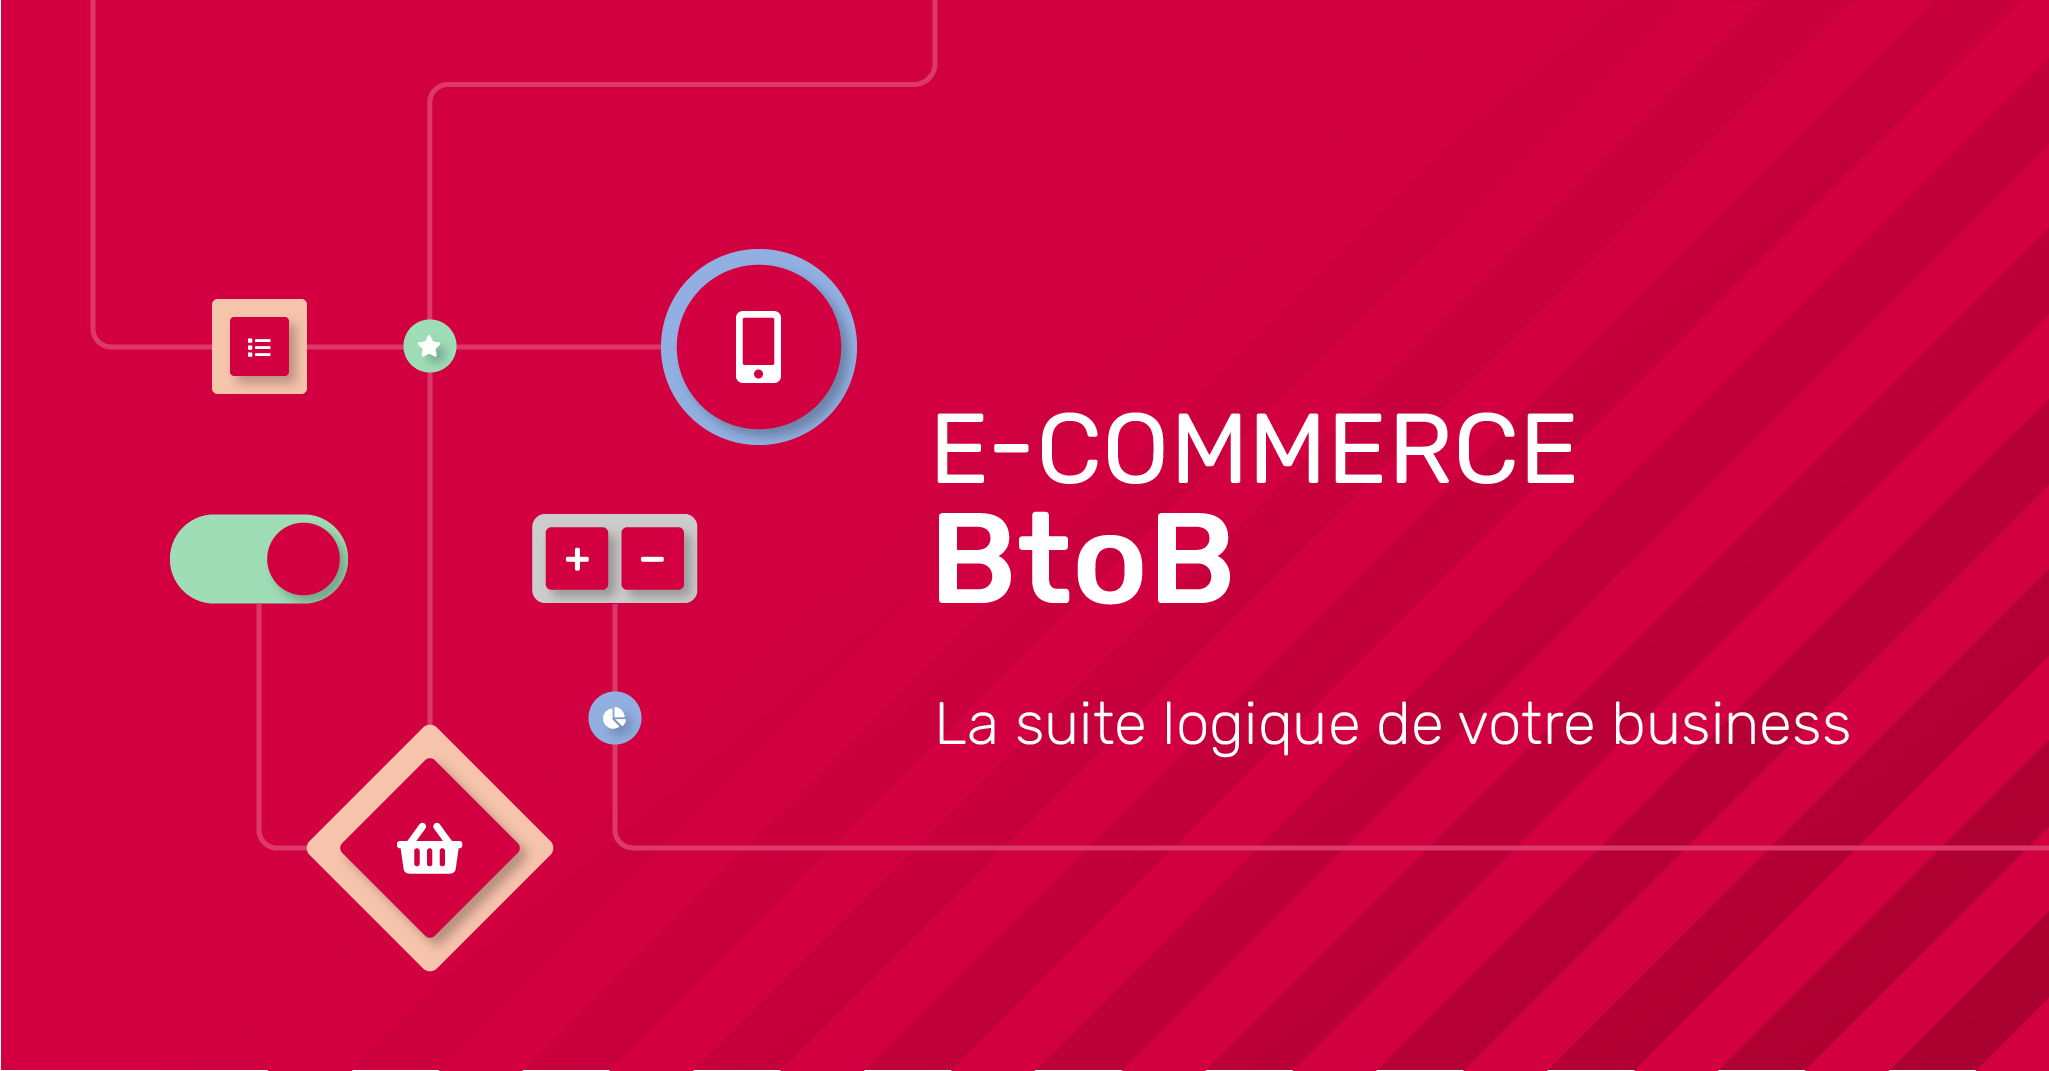 Du marketing BtoB au e-commerce BtoB : comment transformer vos leads en clients ?